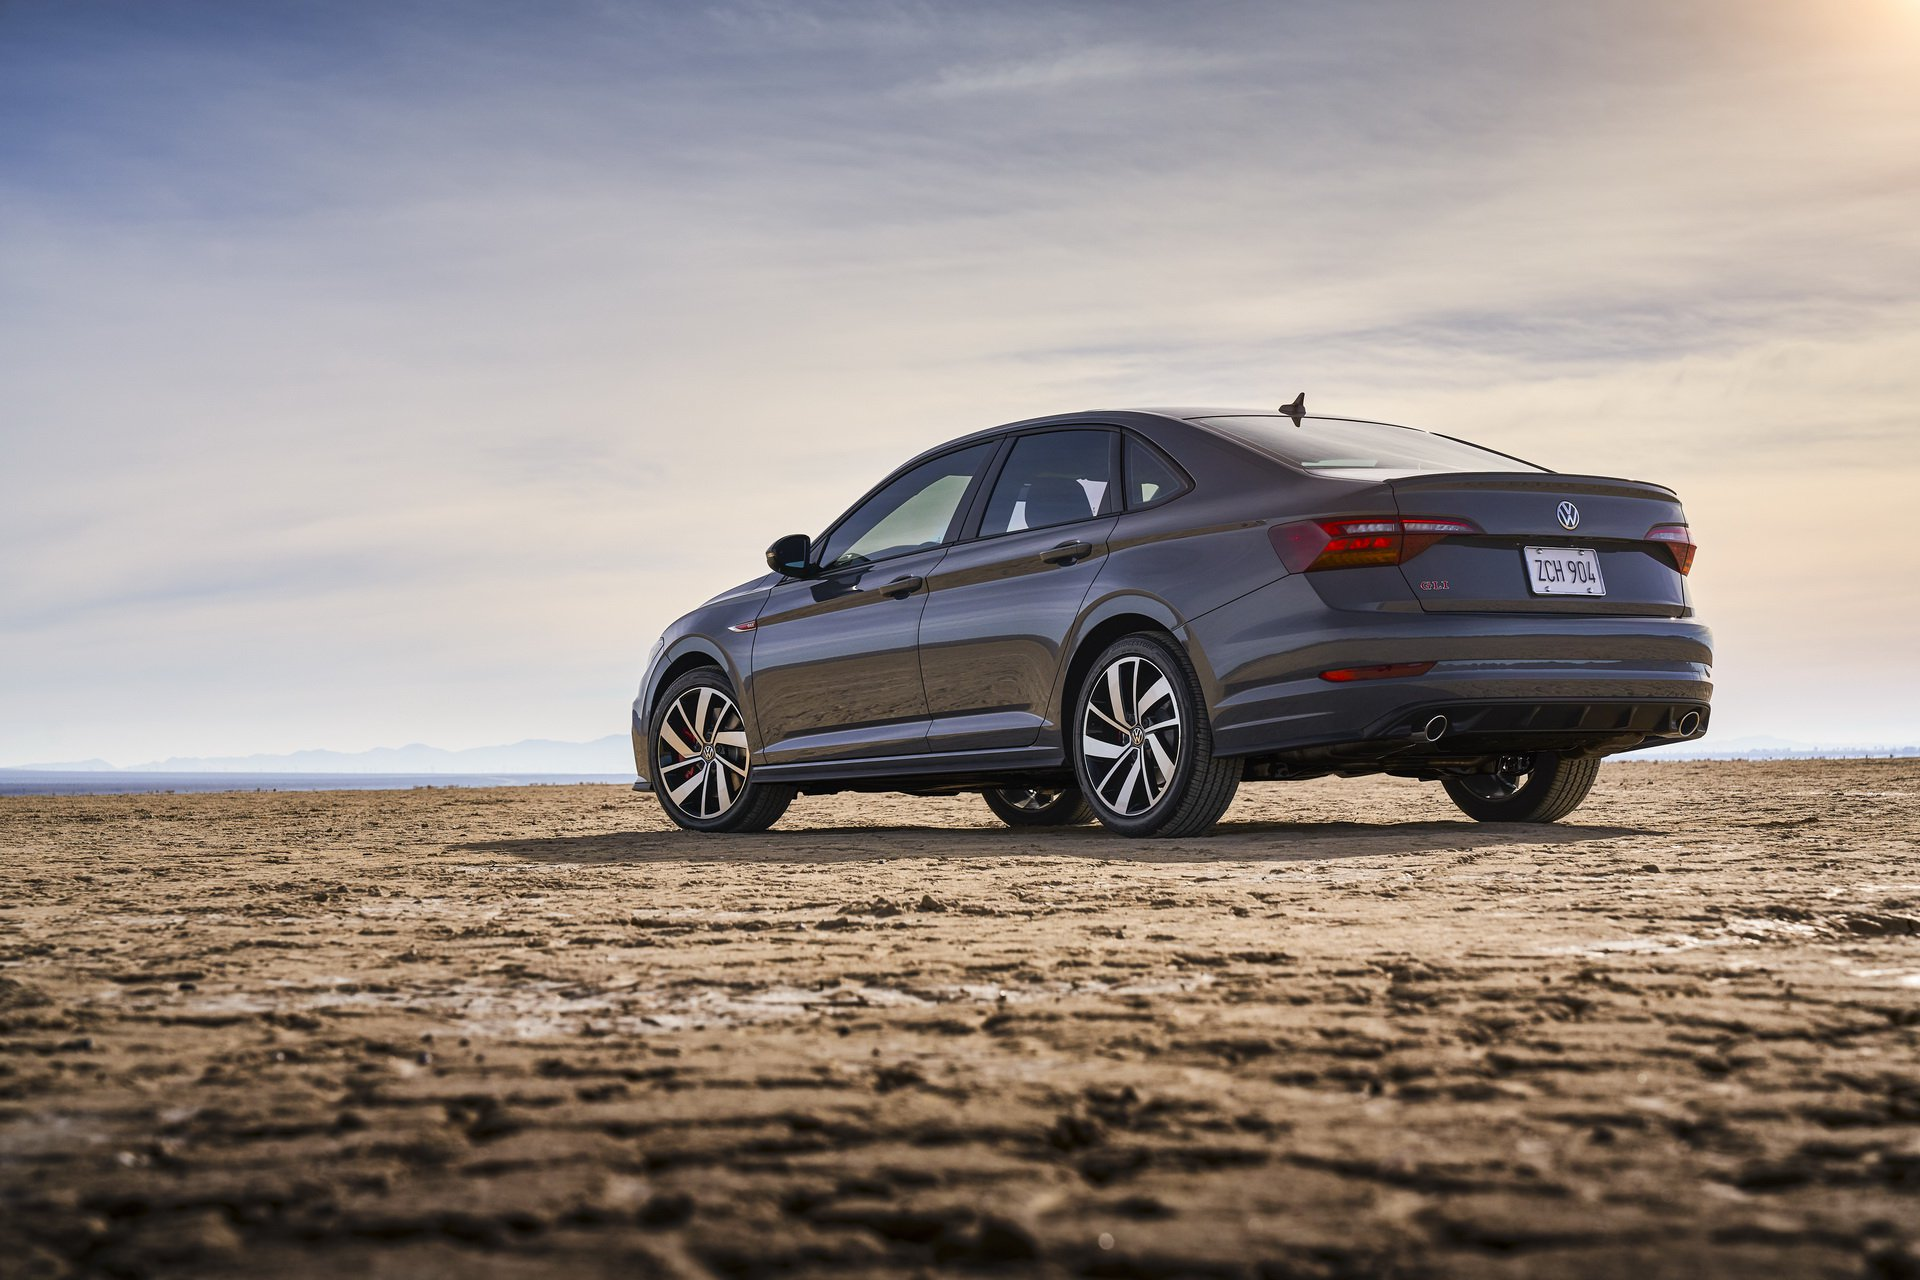 2019 Volkswagen Jetta GLI Rear Three-Quarter Wallpapers (9)